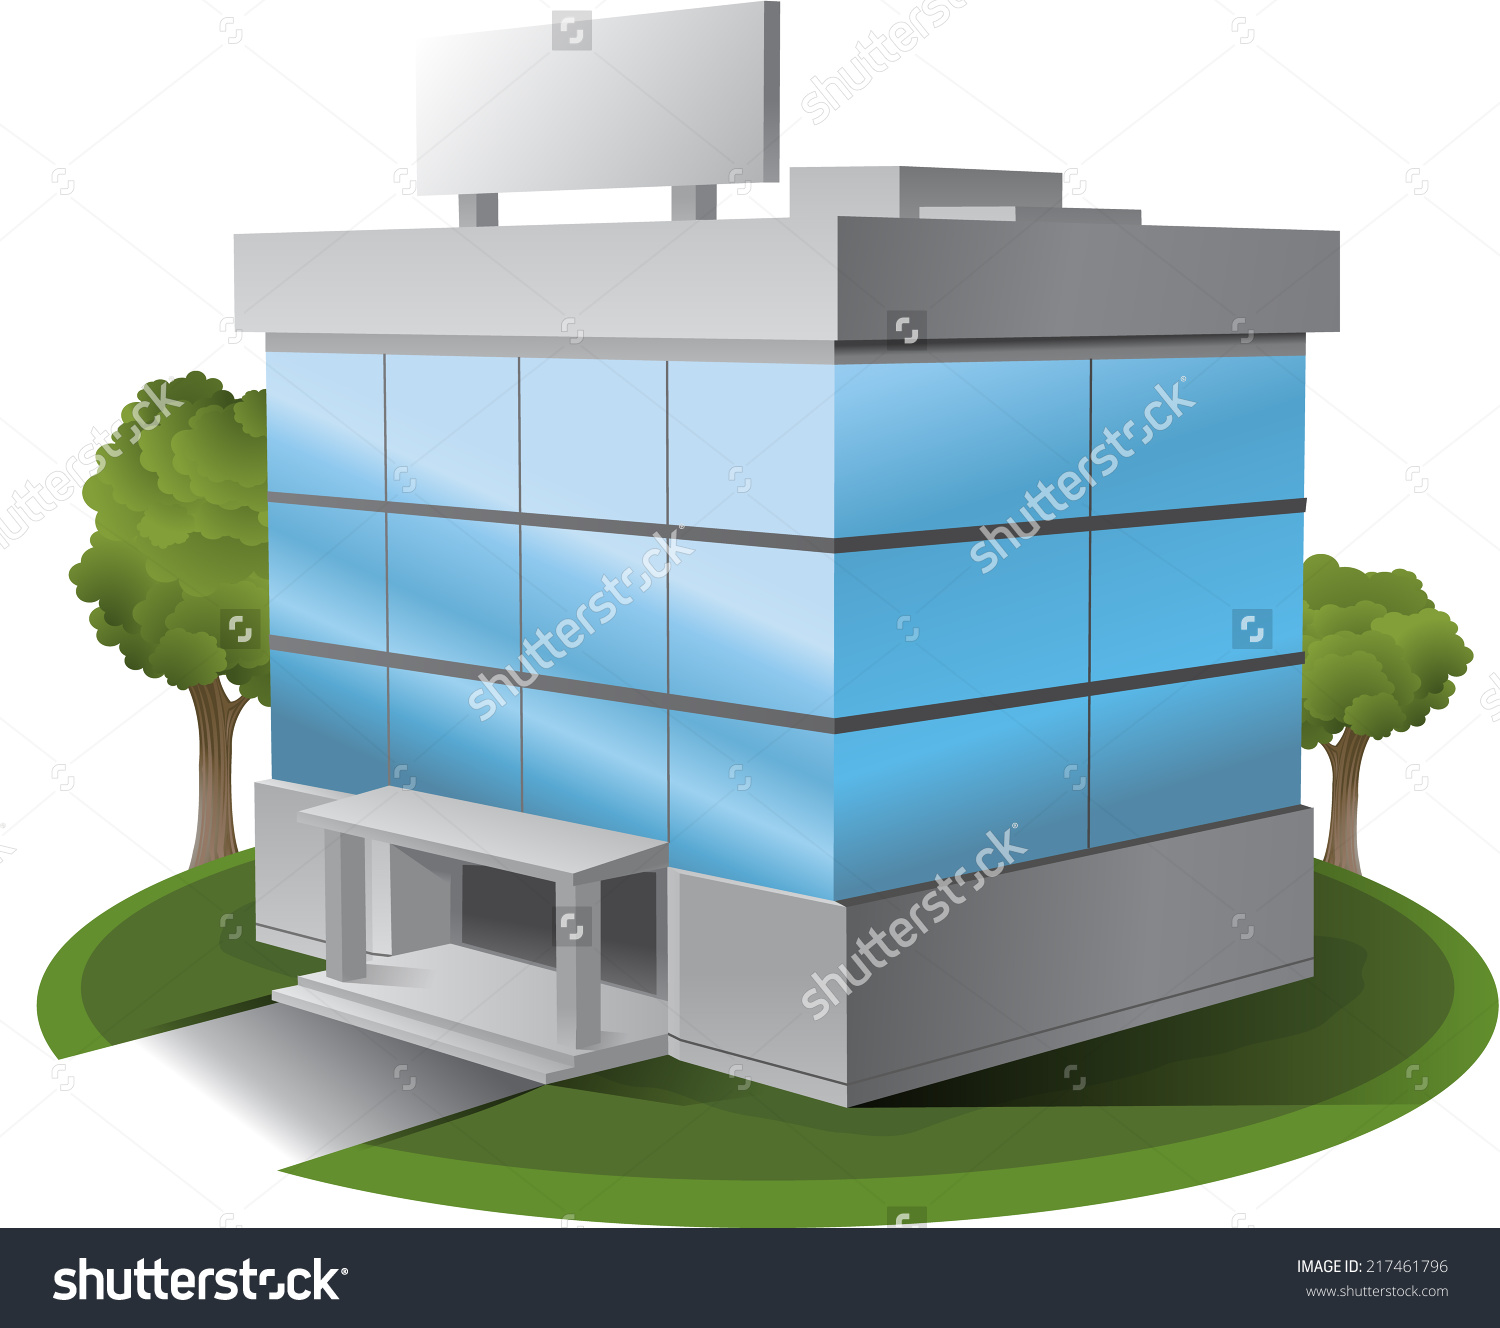 Office clipart office building Building Building 07 Office –